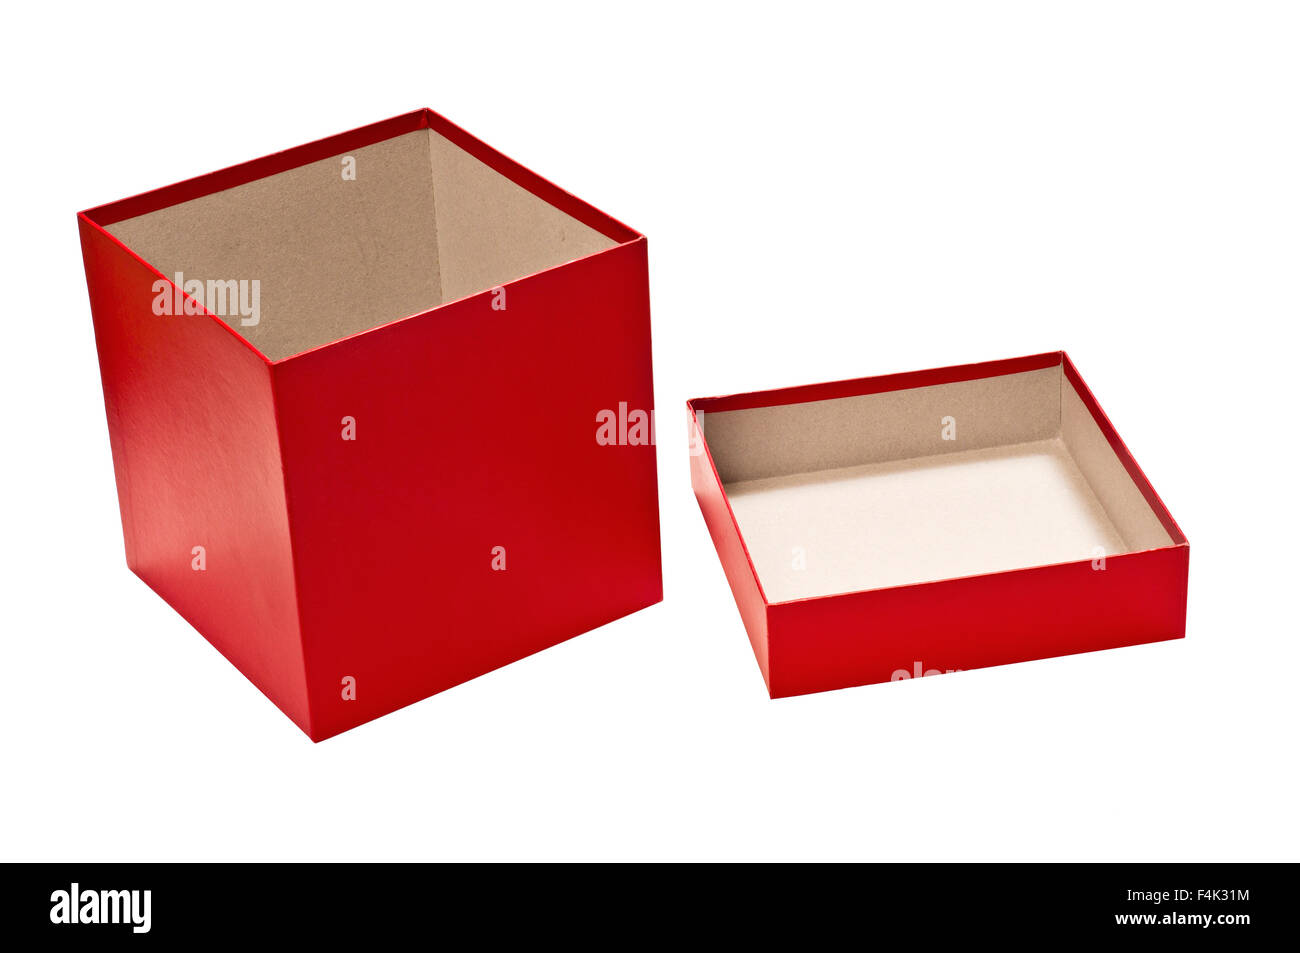 Open Red Empty Gift Box With Lid - Stock Image